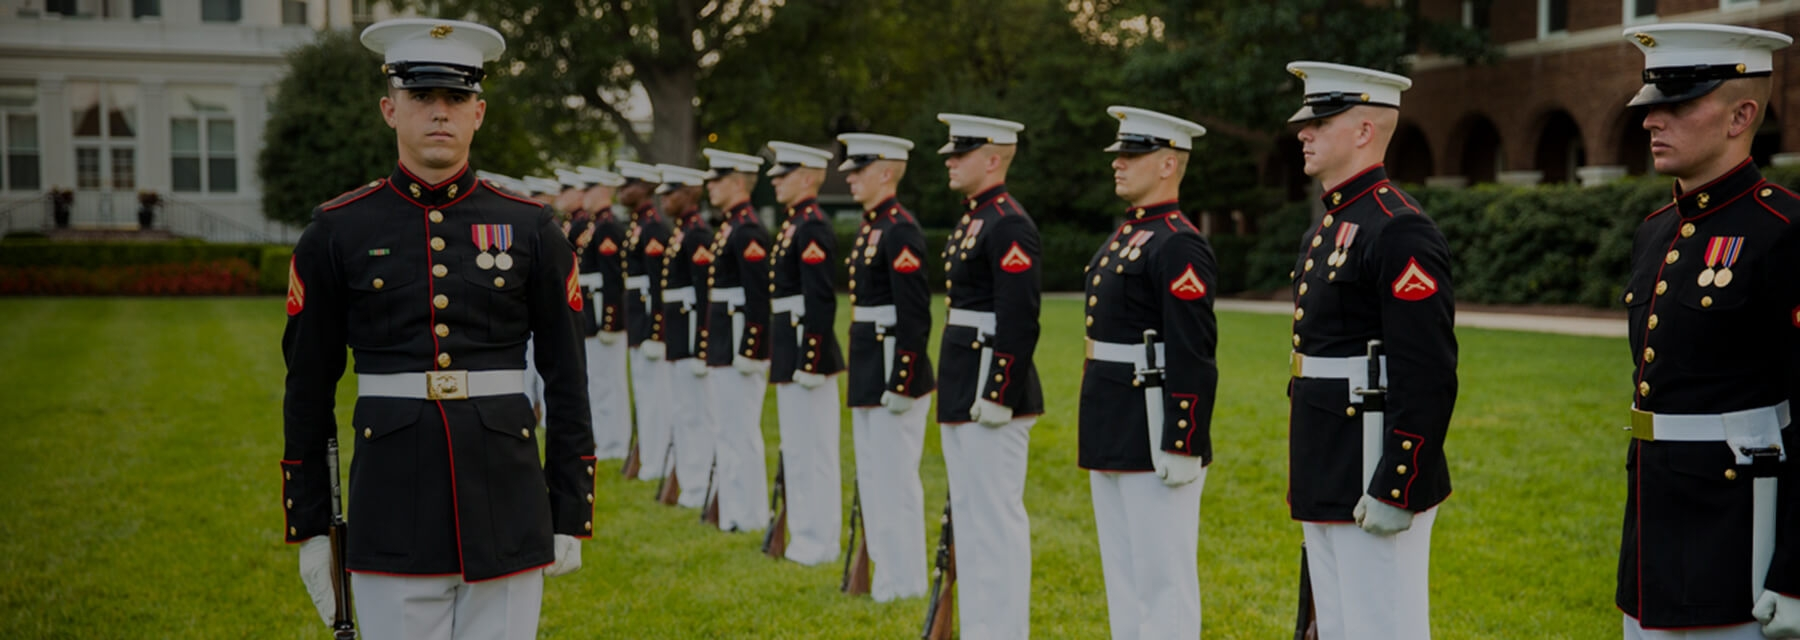 A Marine Corps Silent Drill Platoon stands in single line with rifles by their sides.